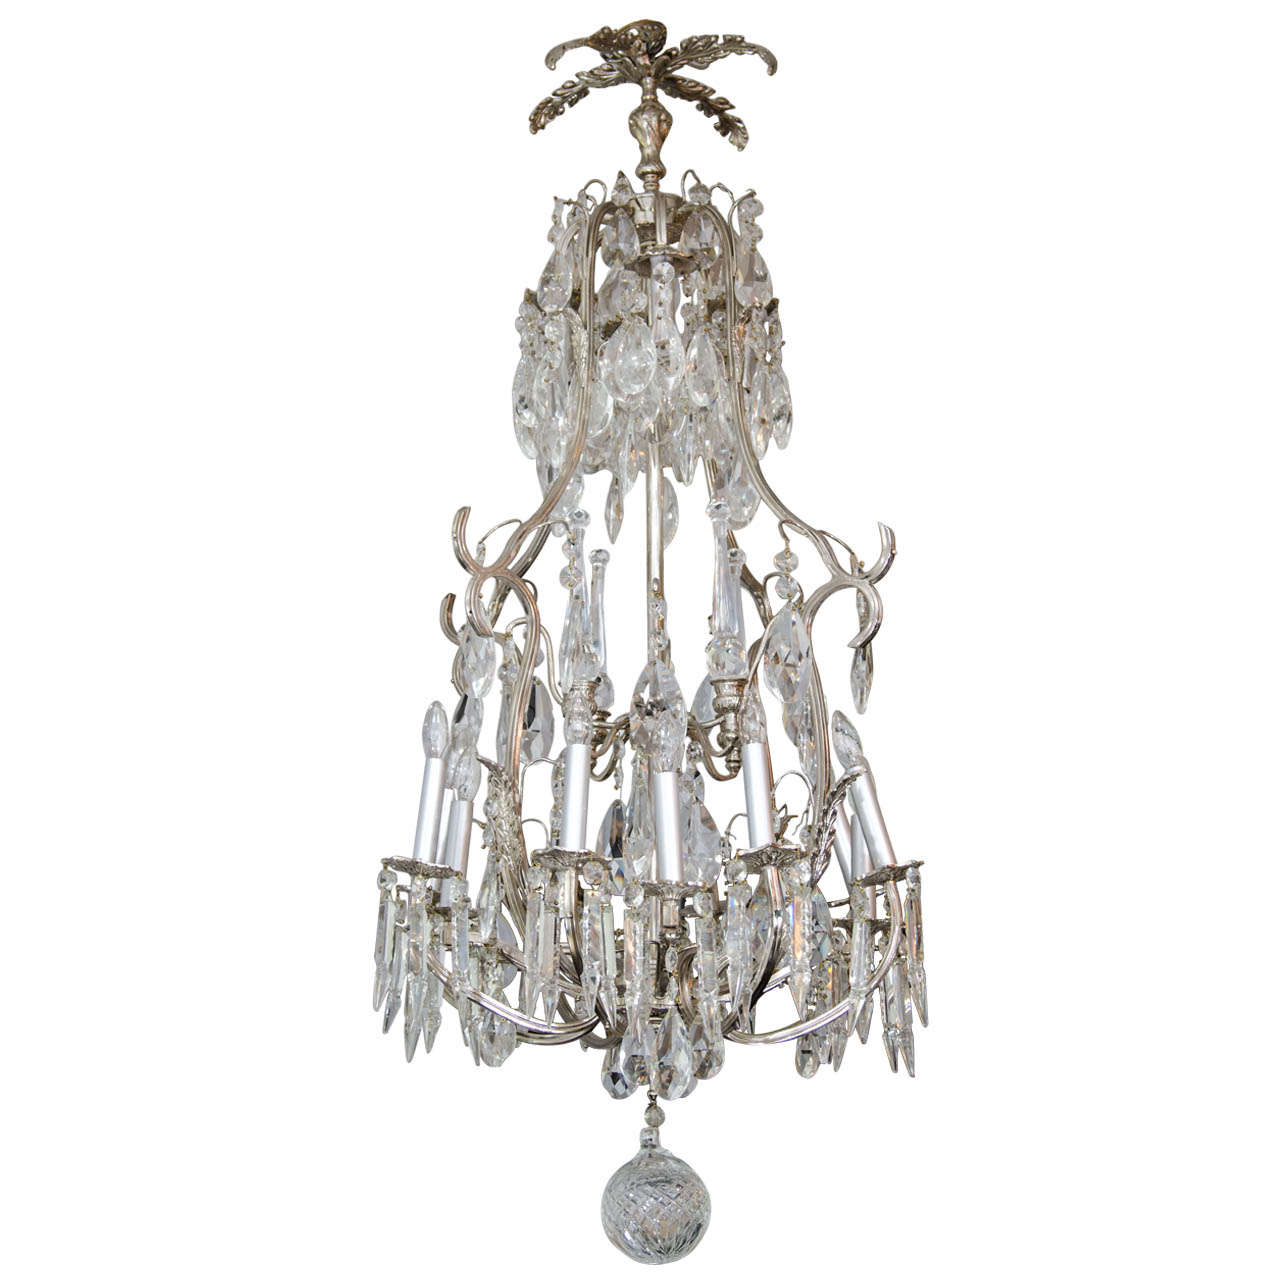 20th Century French Crystal and Nickel-Plated Fixture For Sale